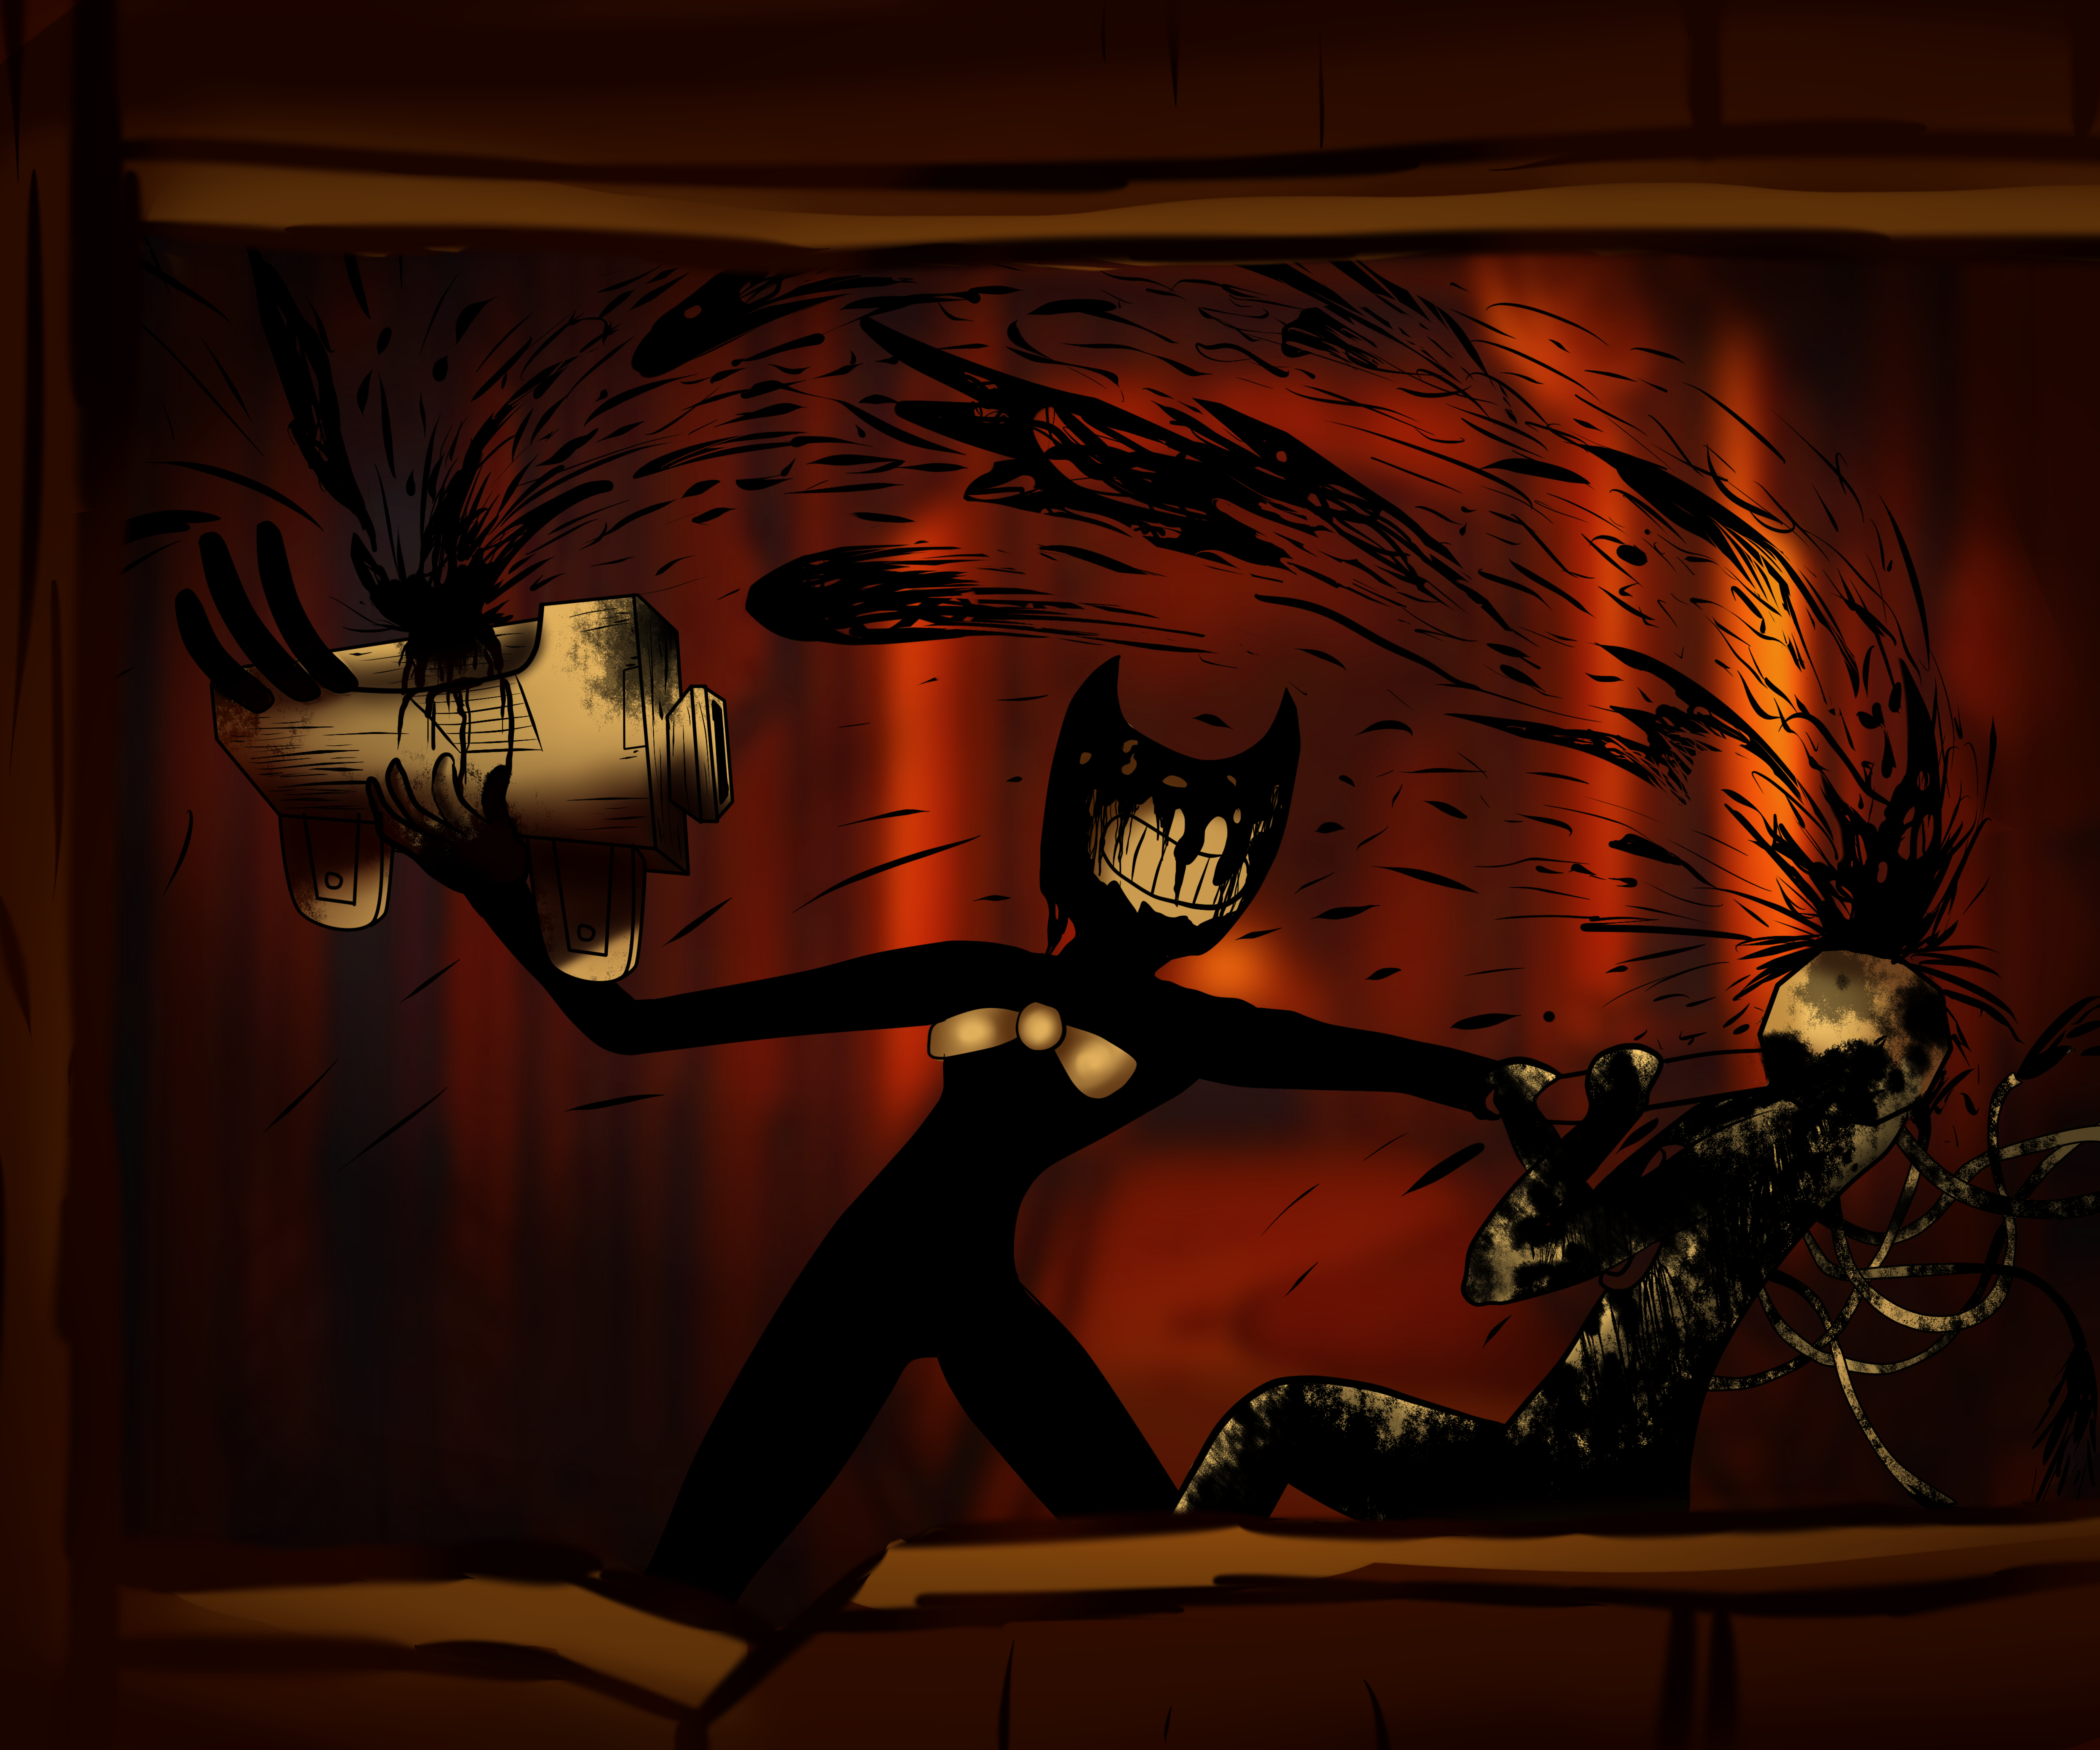 Bendy Vs Projectionist By Monkamoni On DeviantArt